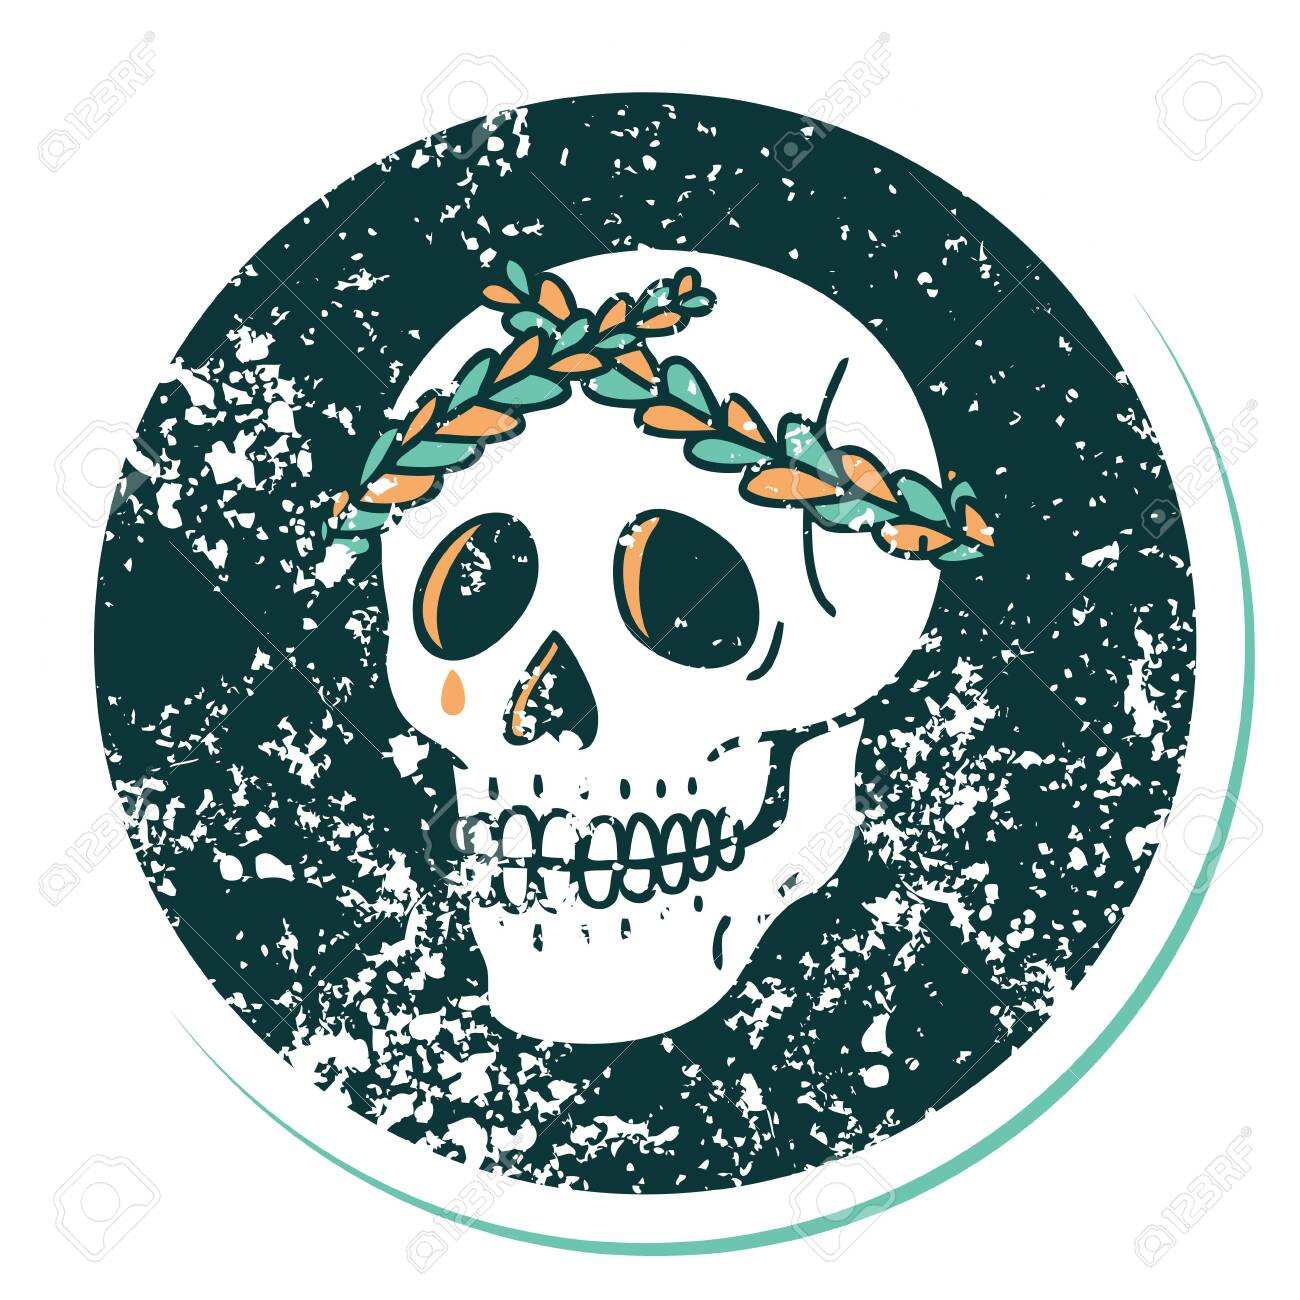 Iconic Distressed Sticker Tattoo Style Image Of A Skull With Royalty Free Cliparts Vectors And Stock Illustration Image 145454548